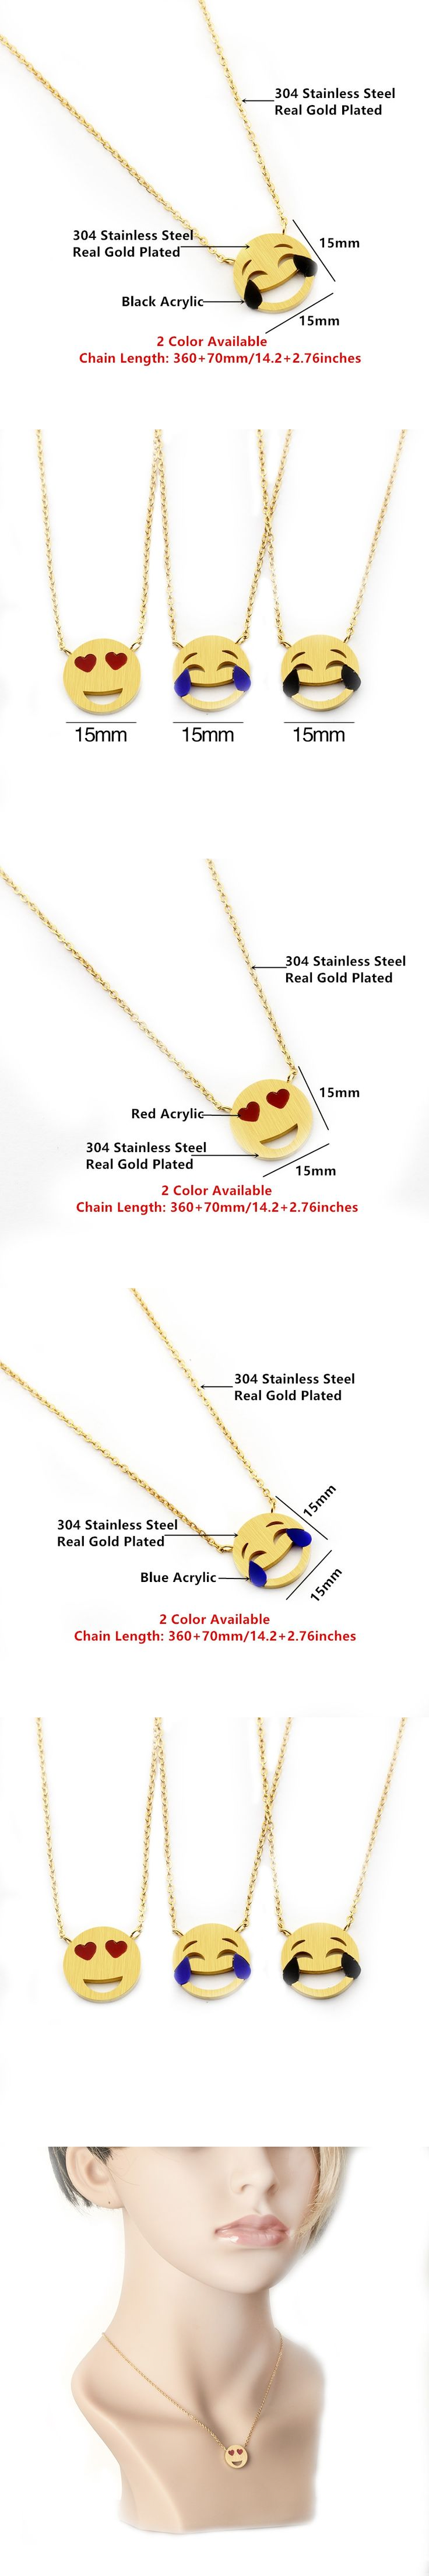 GORGEOUS TALE Stainless Steel Chain Jewelry Charm Laugh Cry Emoji Pendant Necklace for Women Red Heart Eye Blue Acrylic Necklace